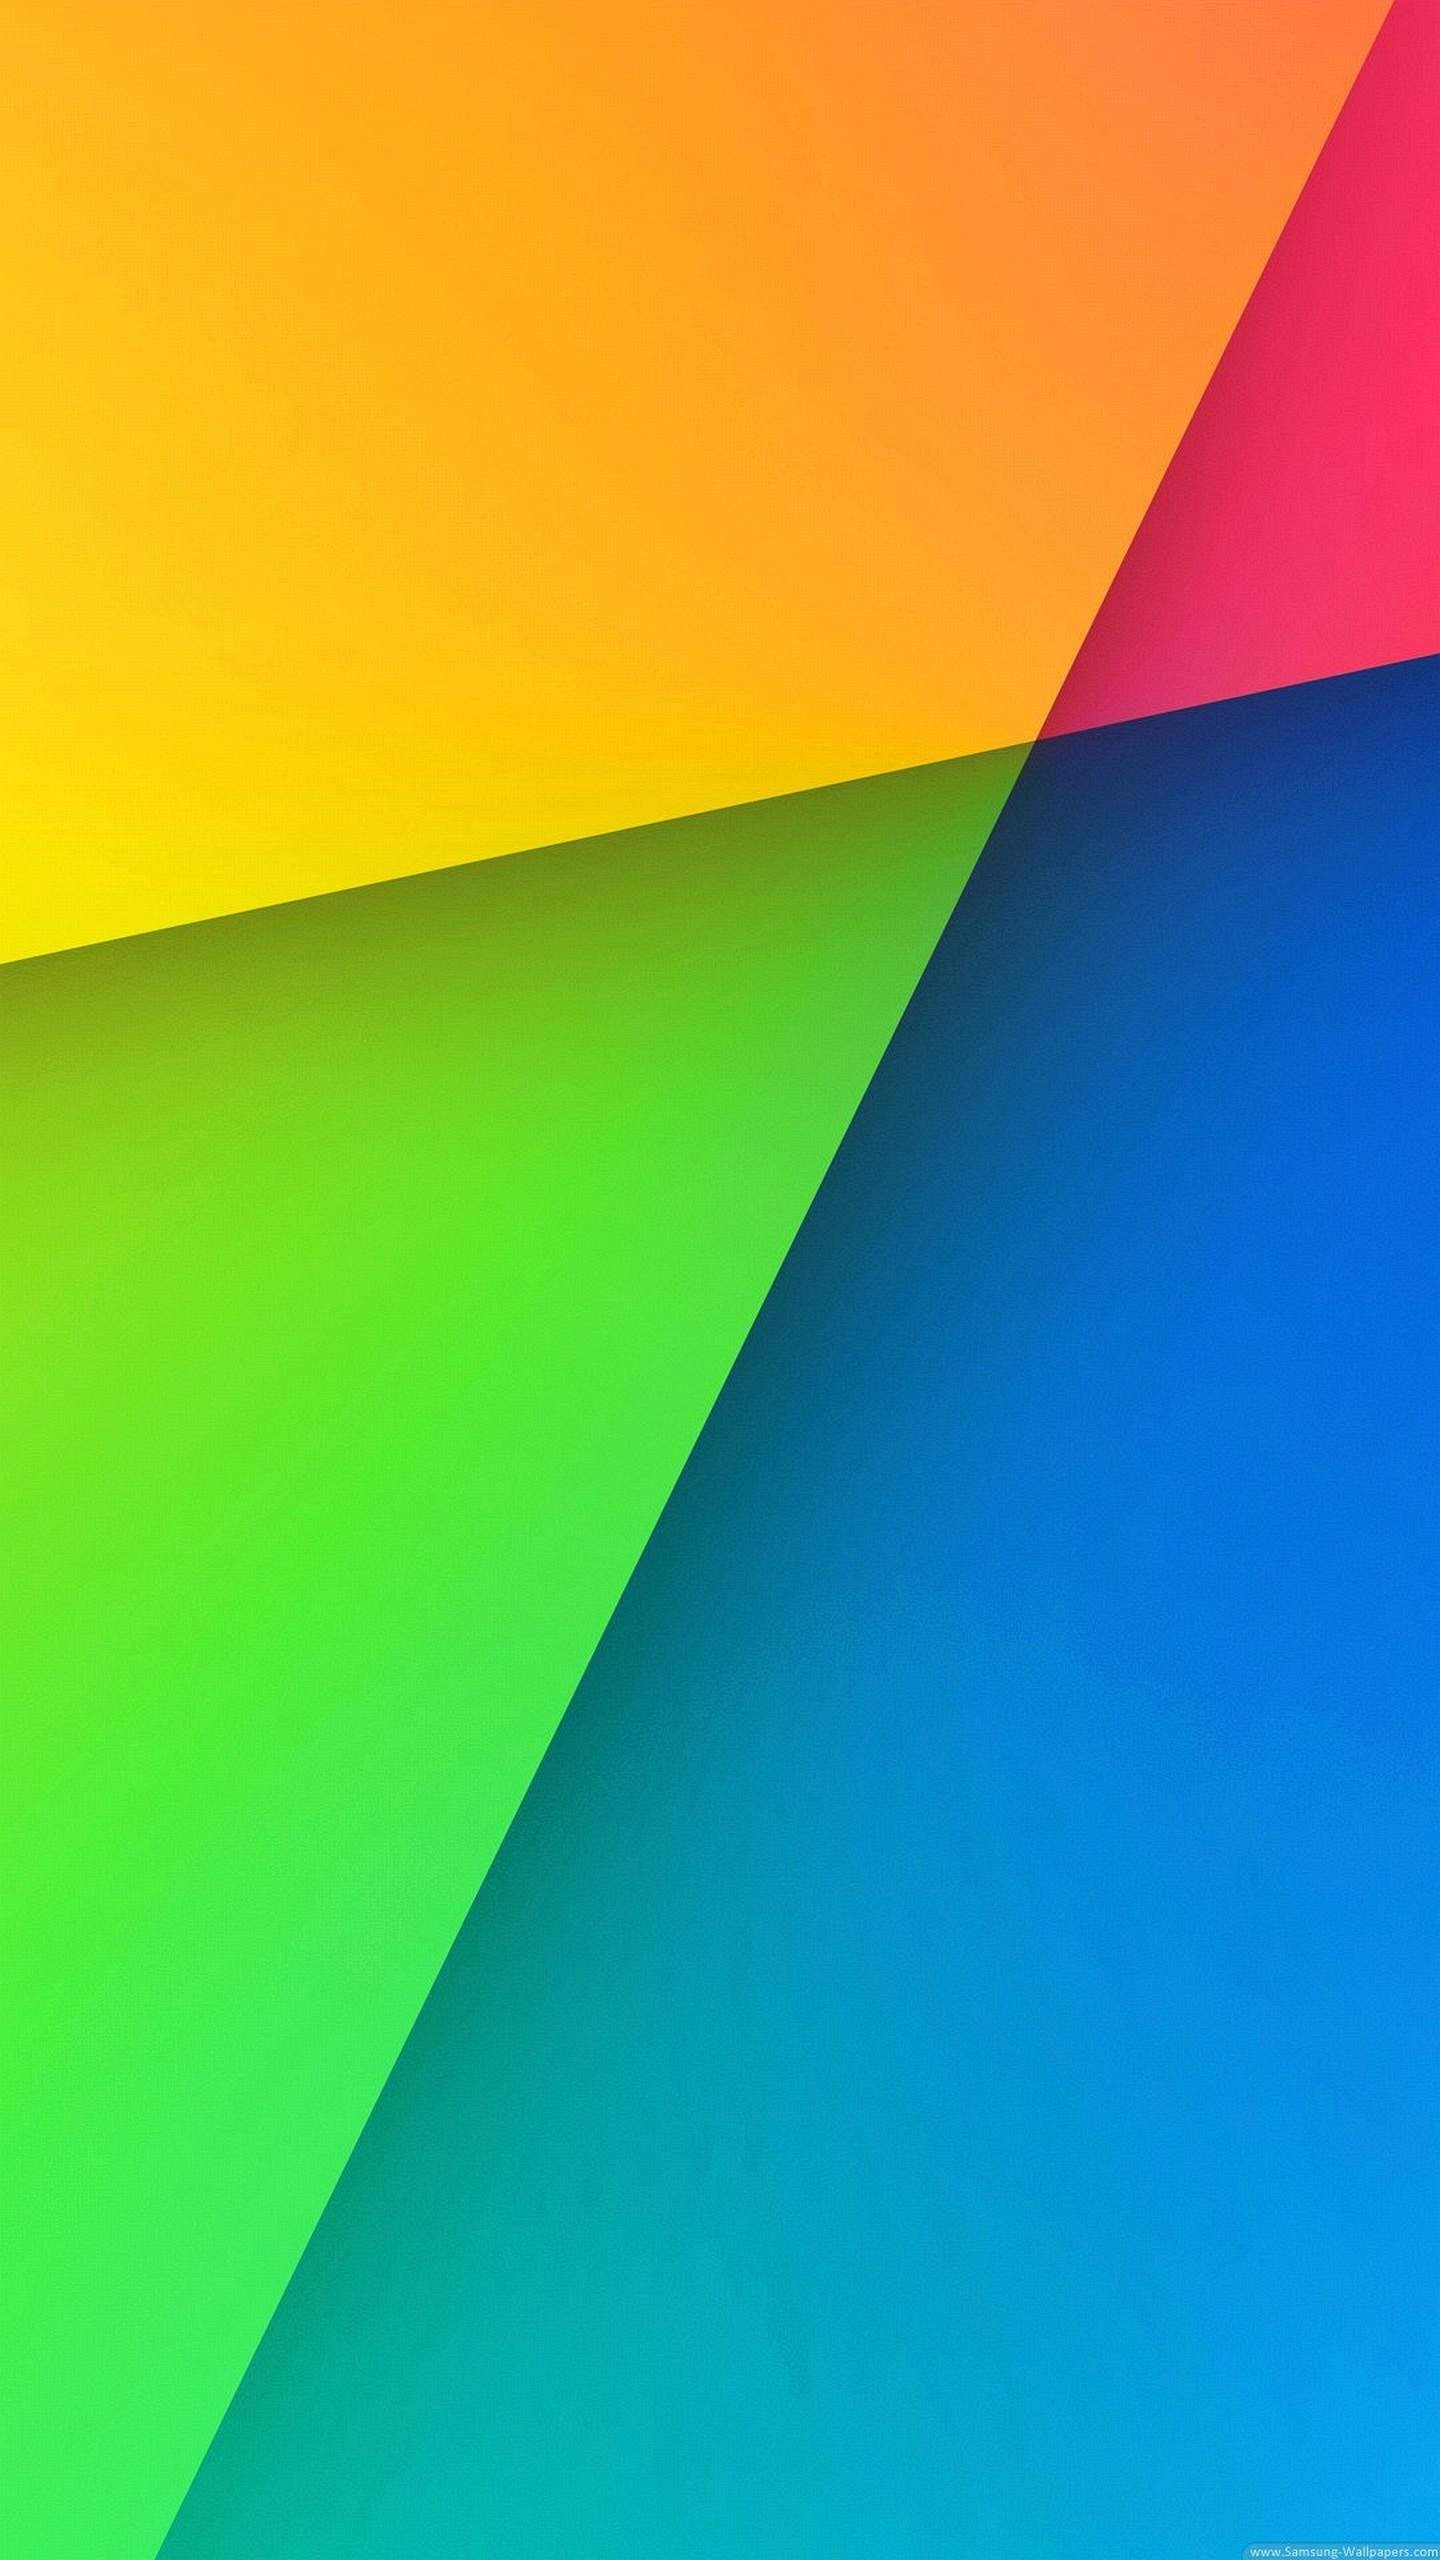 1440x2560 20 colorful wallpapers for your quad hd smartphone